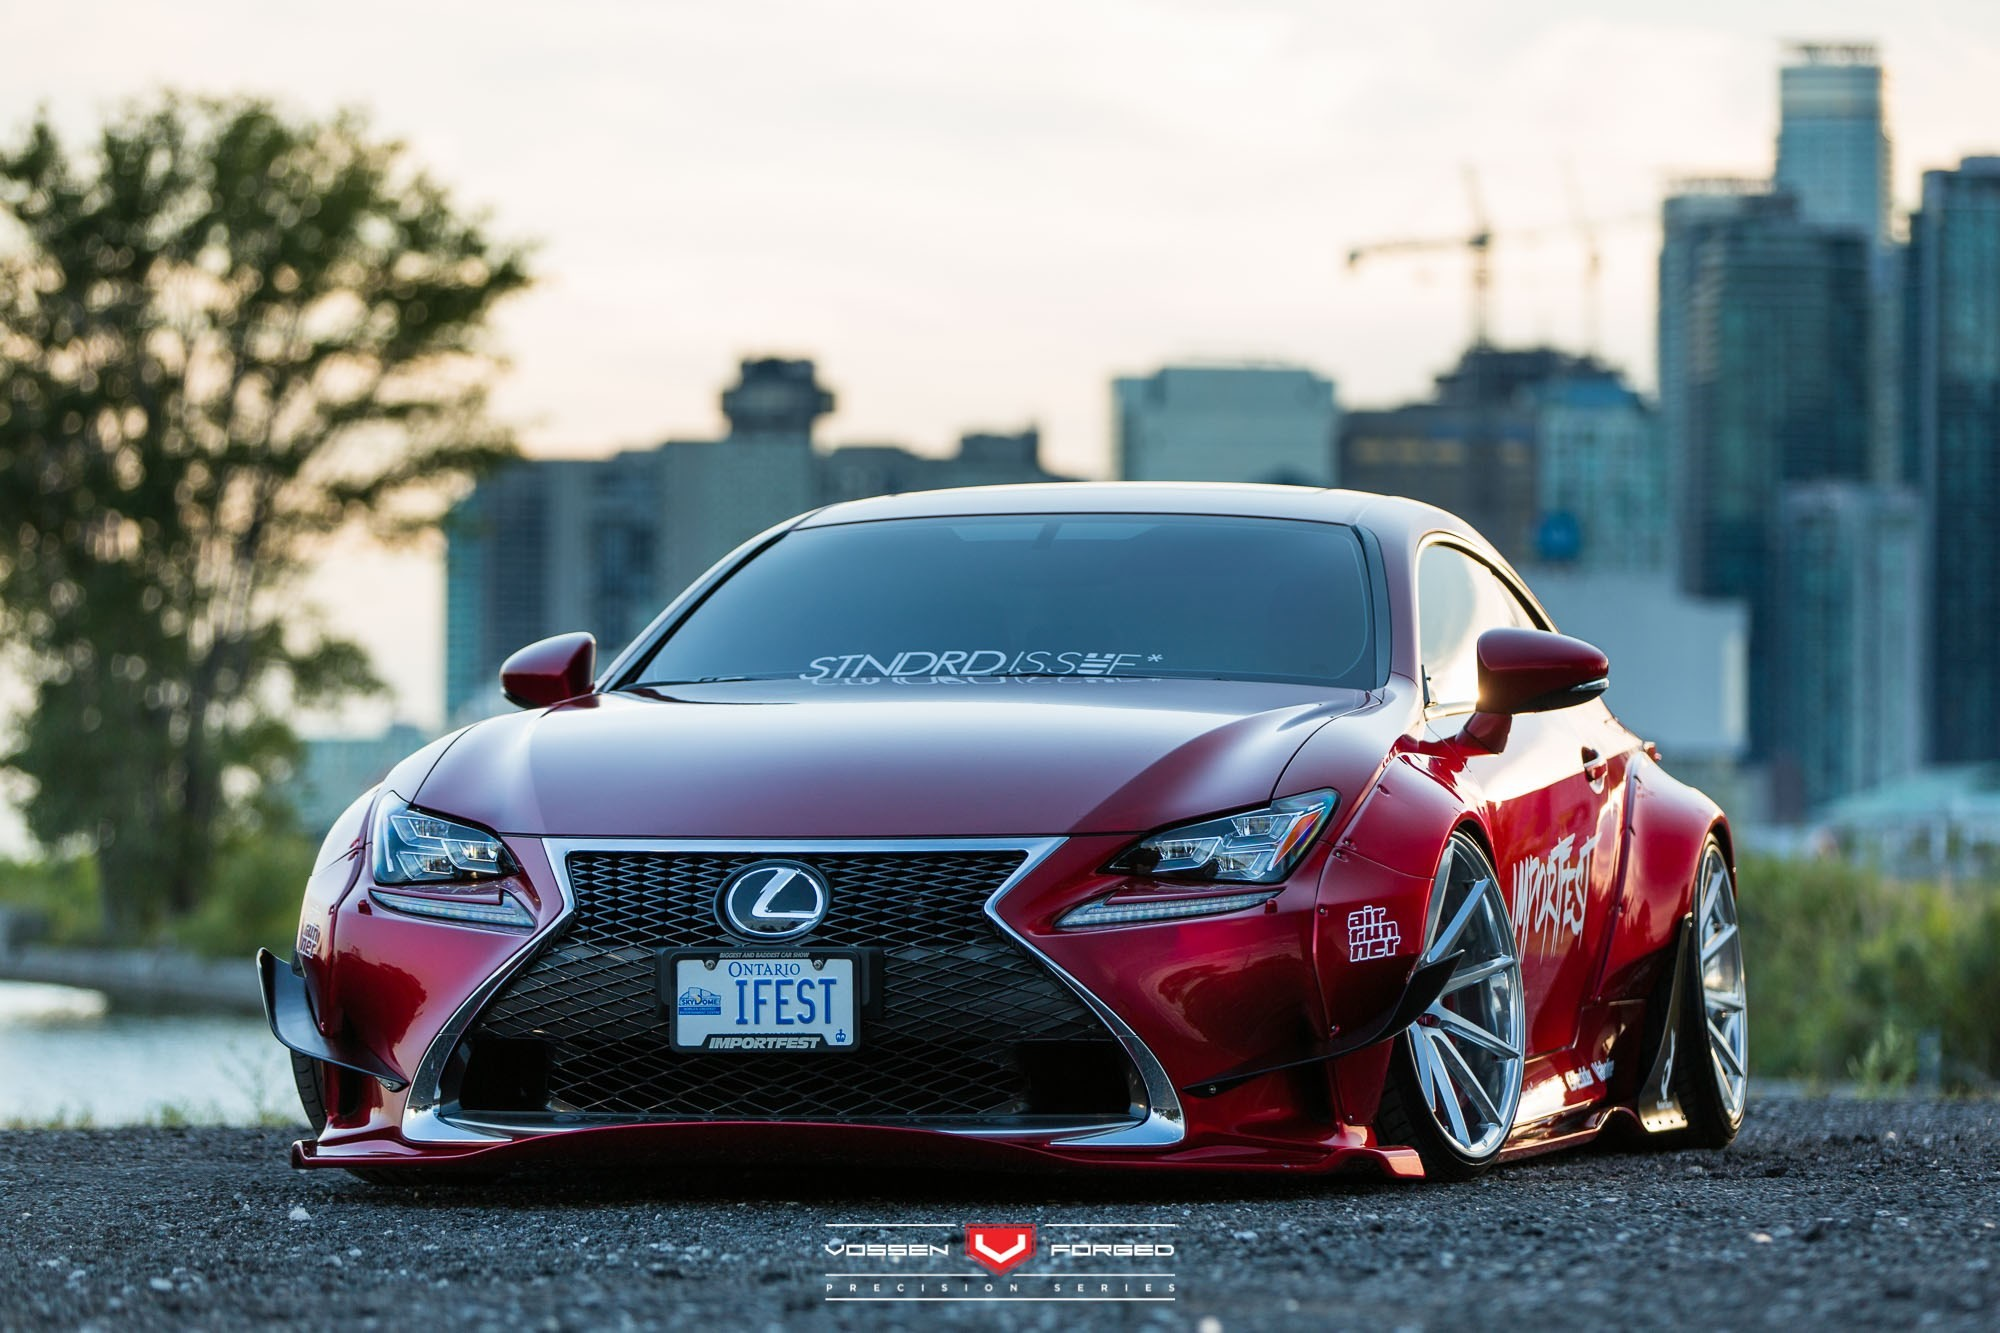 2000x1333 Rocket Bunny Lexus RC F Changes Wallpaper - http://wallsauto.com/rocket- bunny-lexus-rc-f-changes-wallpaper/ | Cool Car Wallpapers | Pinterest | Car  ...